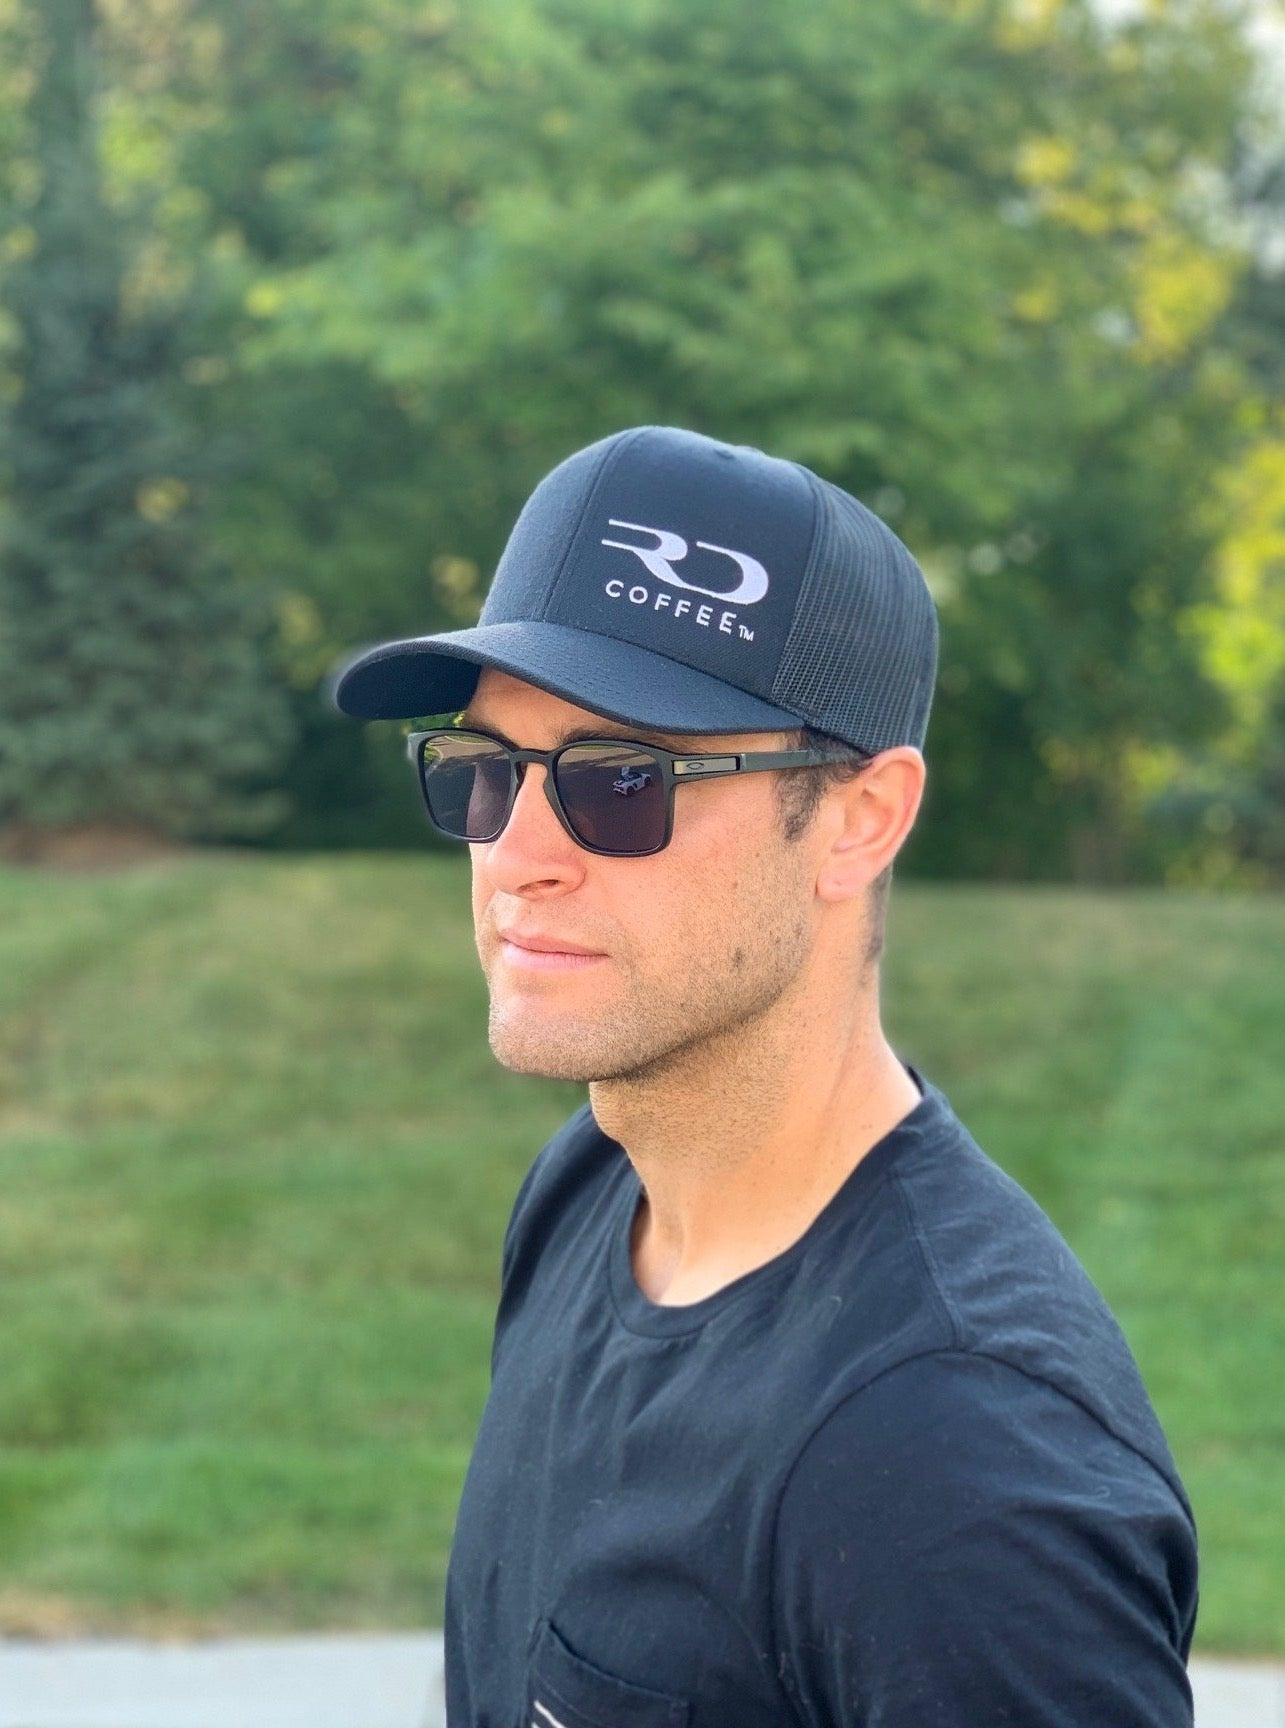 RD COFFEE SOLID BLACK TRUCKER HAT